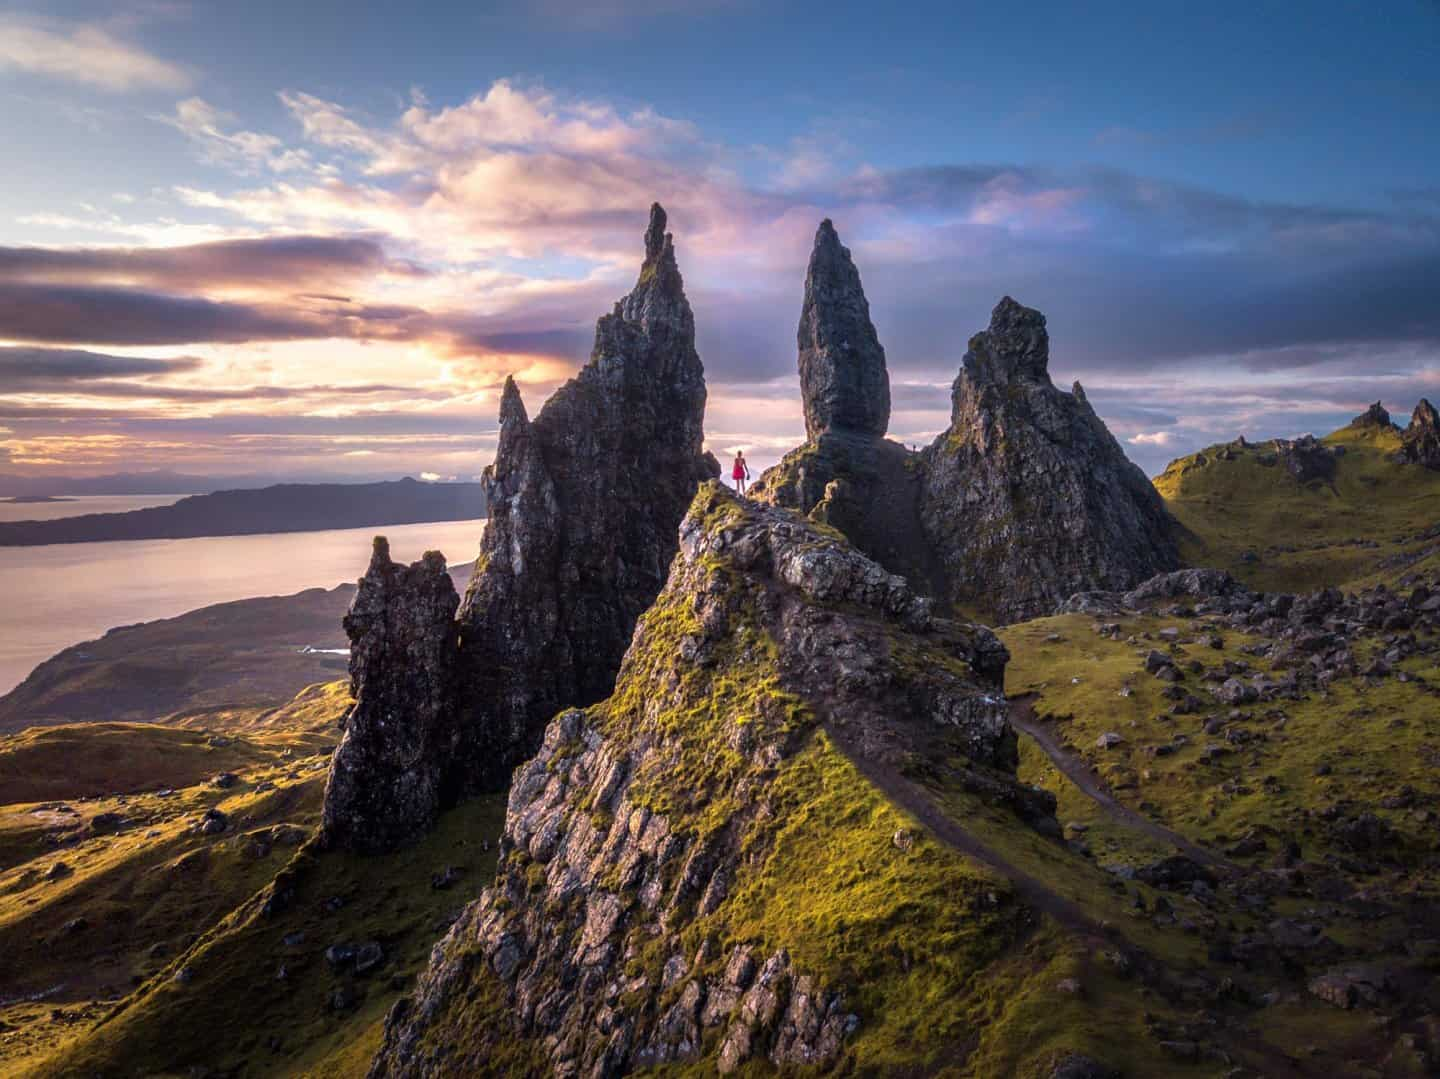 With 10 Days in Scotland, sunrise at the Old Man of Storr is a must.